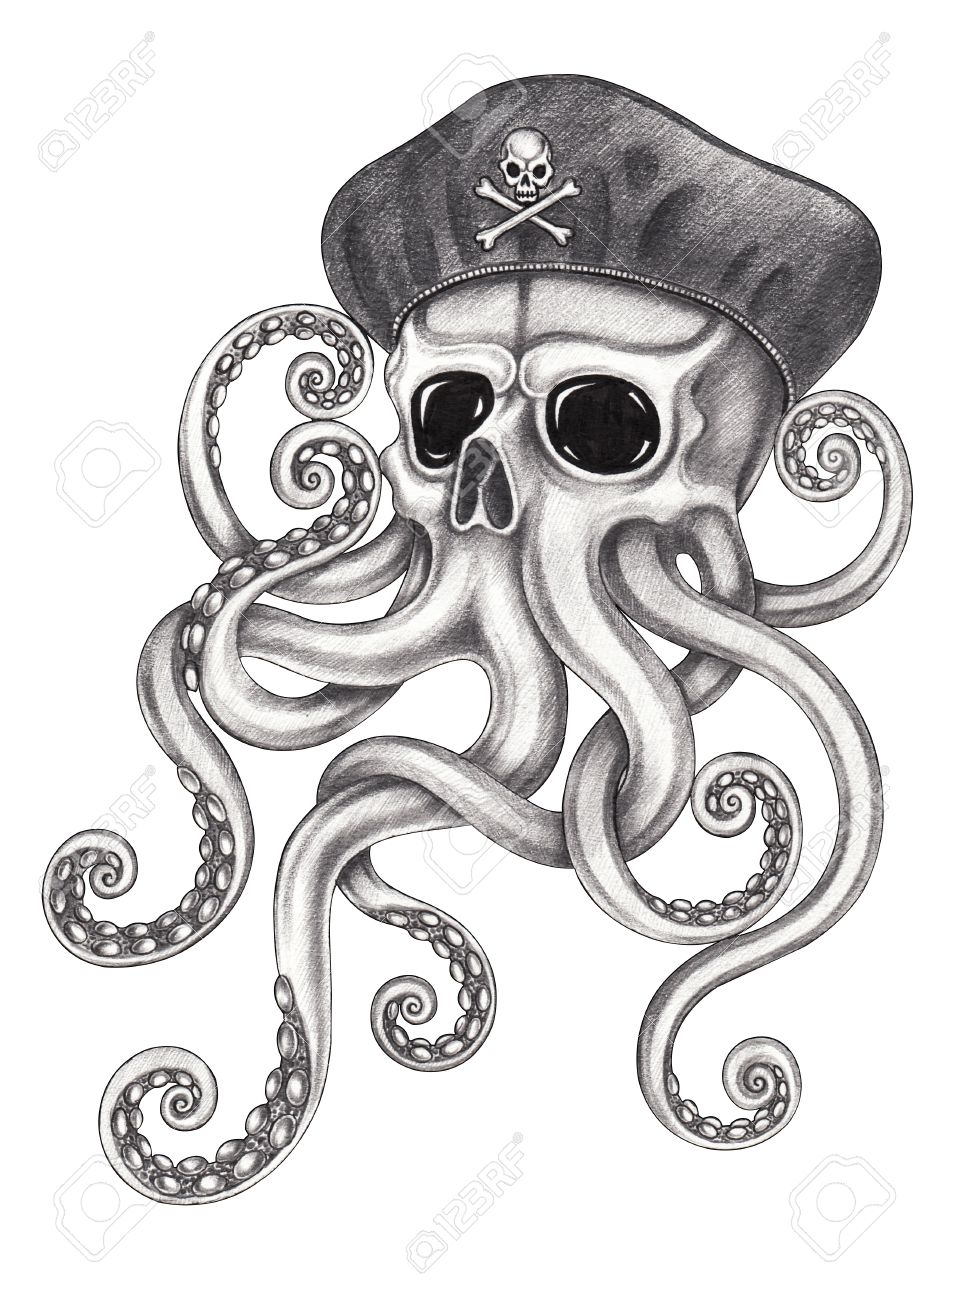 976x1300 Skull Octopus Surreal Tattoo.hand Pencil Drawing On Paper. Stock